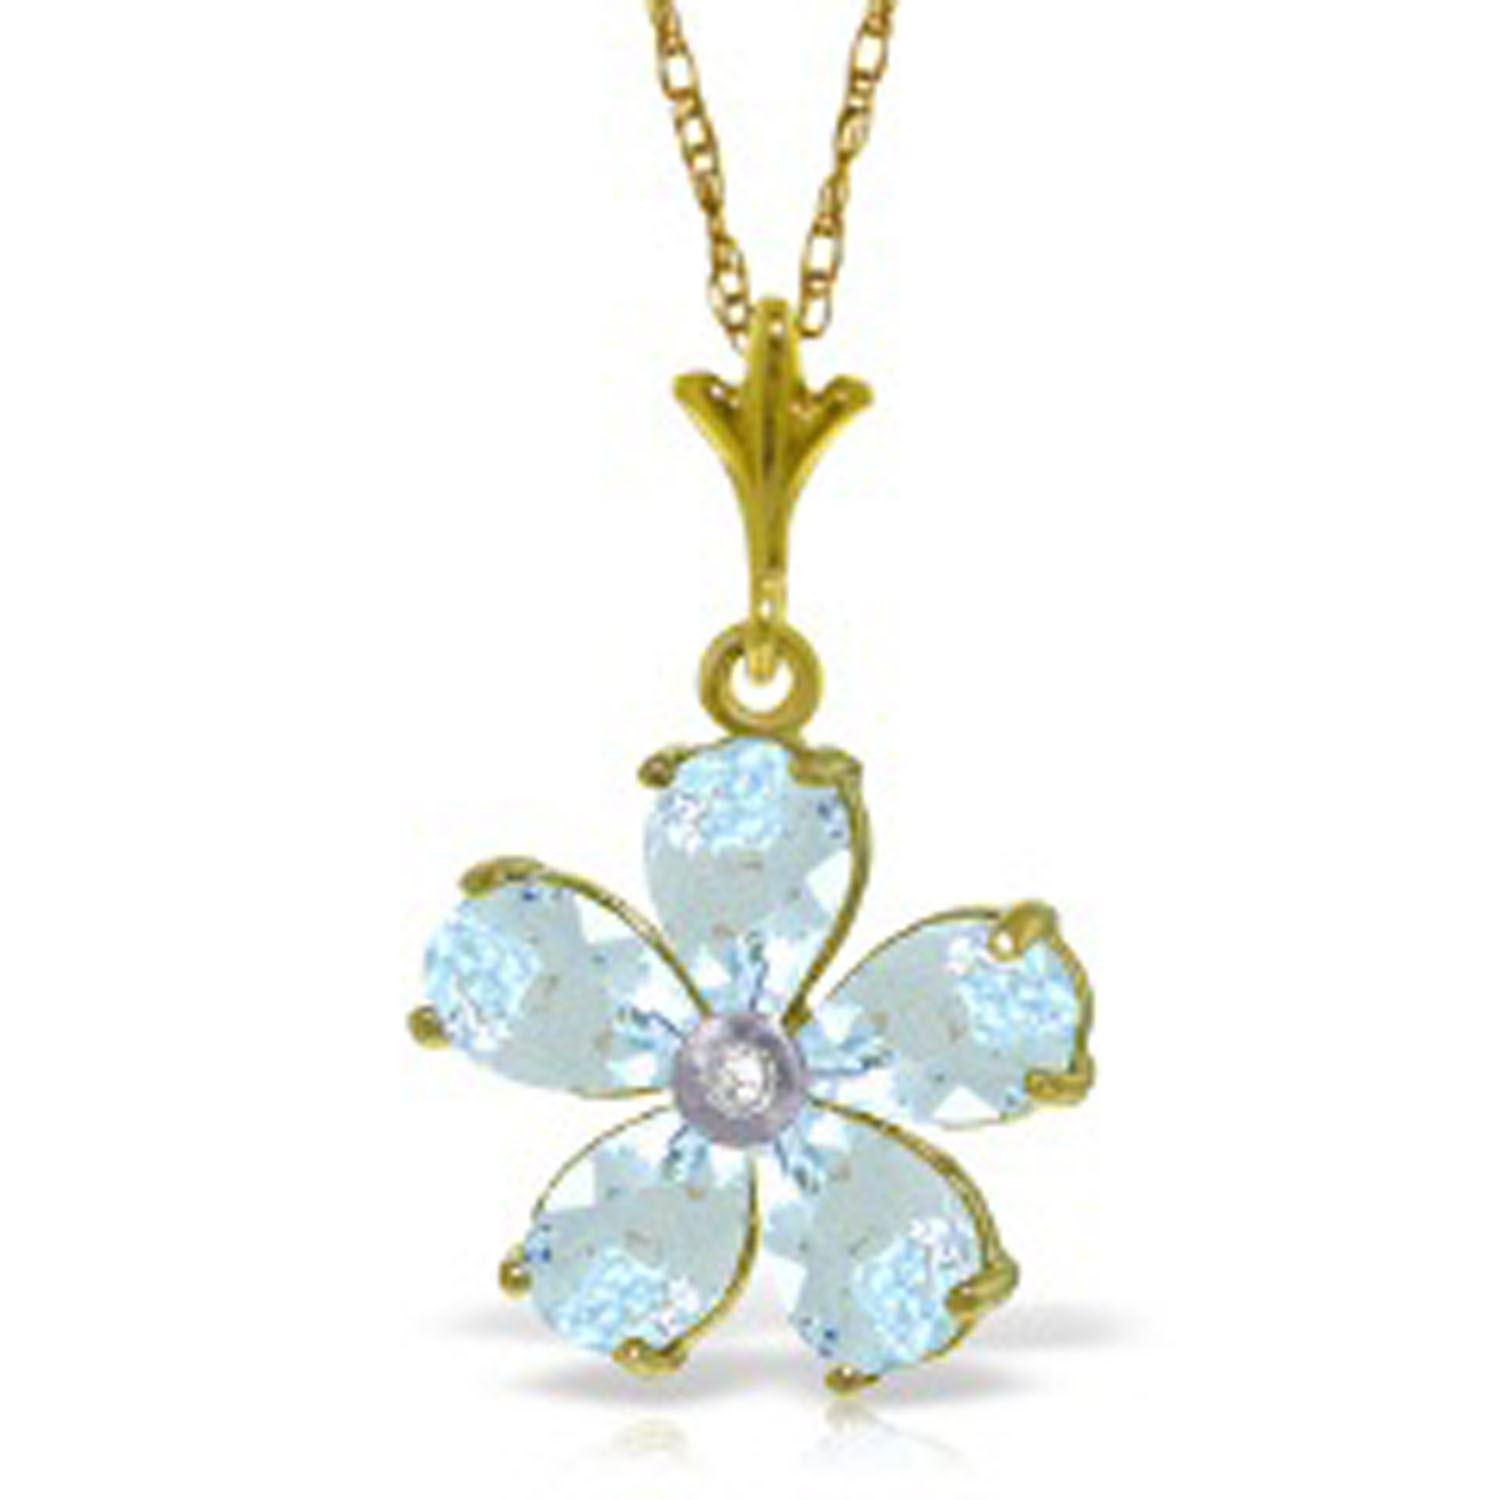 ALARRI 2.22 Carat 14K Solid Gold Necklace Natural Aquamarine Diamond with 20 Inch Chain Length. by ALARRI